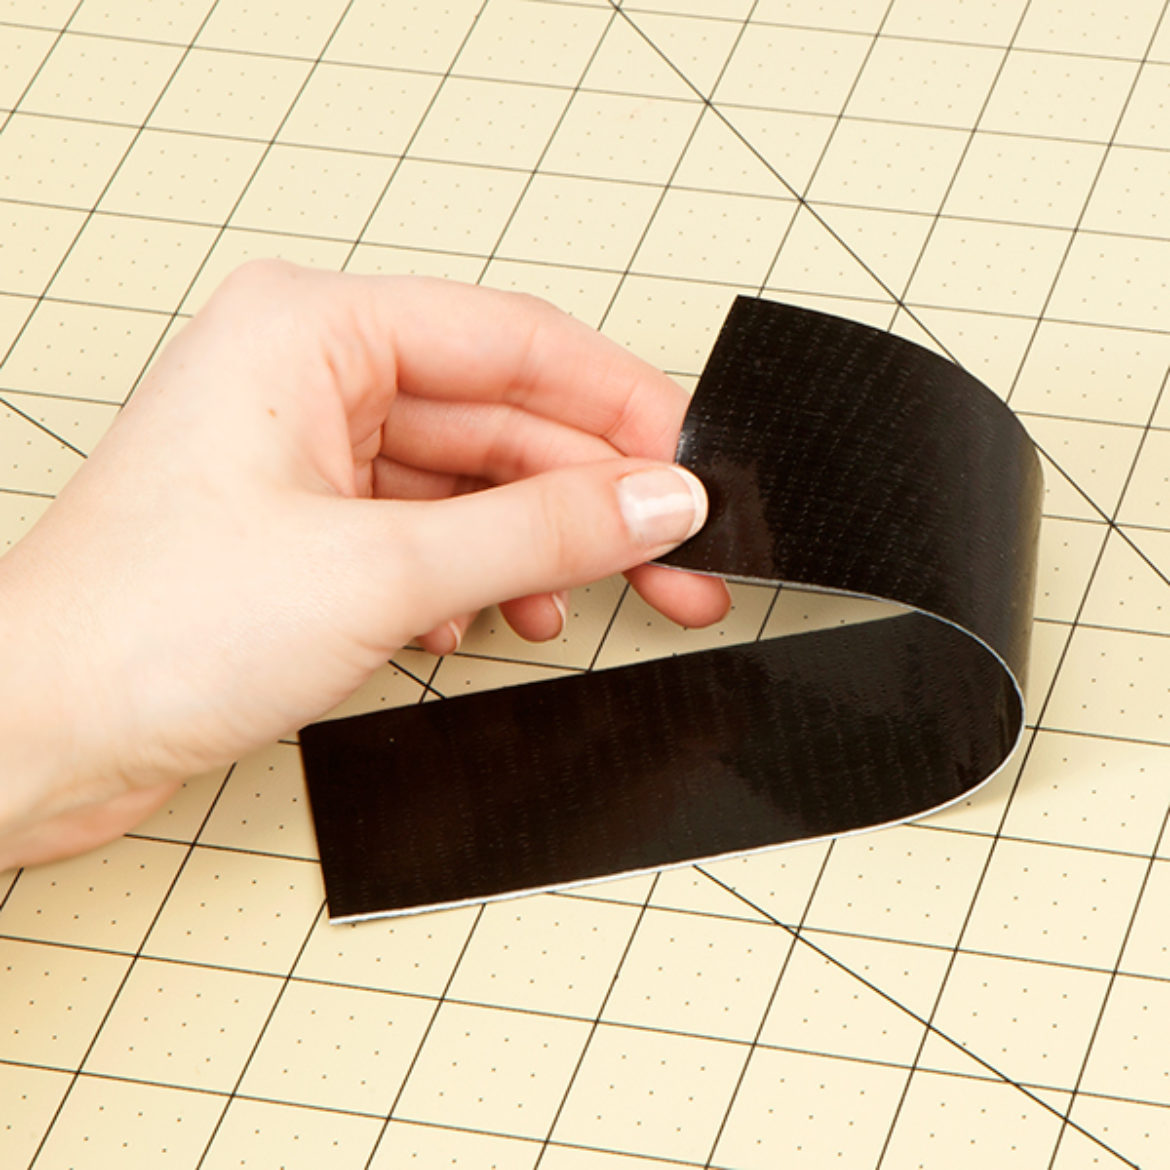 Double sided strip of Duck Tape created by folding a piece of tape over itself